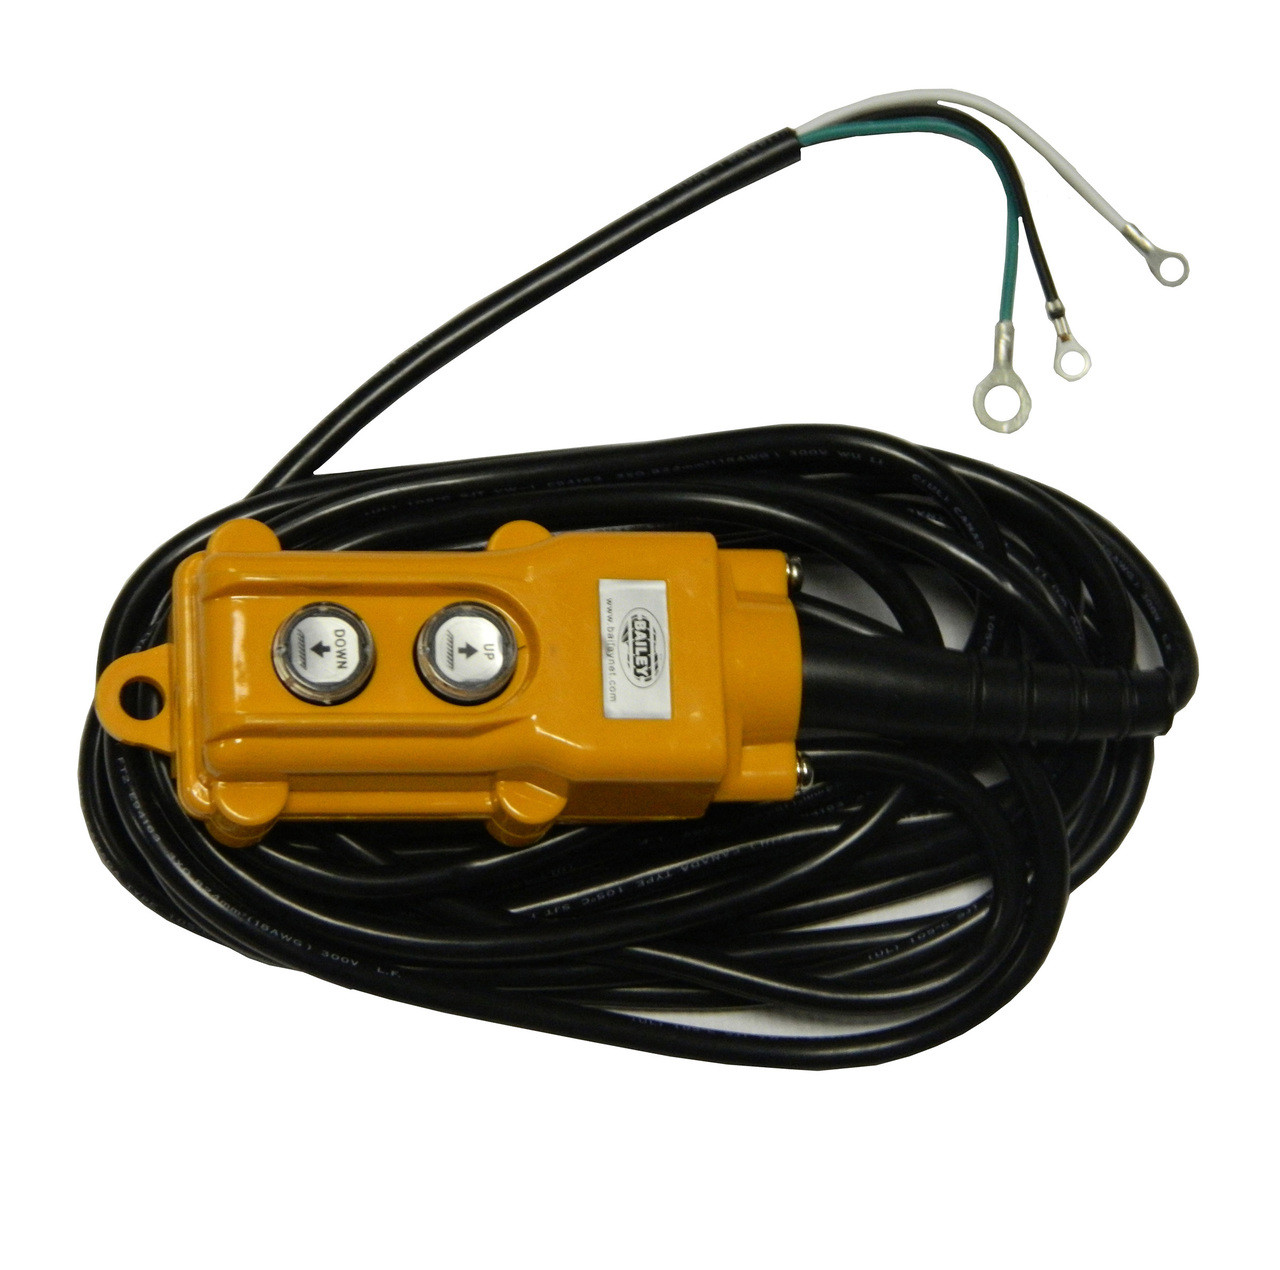 dtrc gd replacement remote control for dump trailers 3 wire croft trailer supply [ 1280 x 1270 Pixel ]